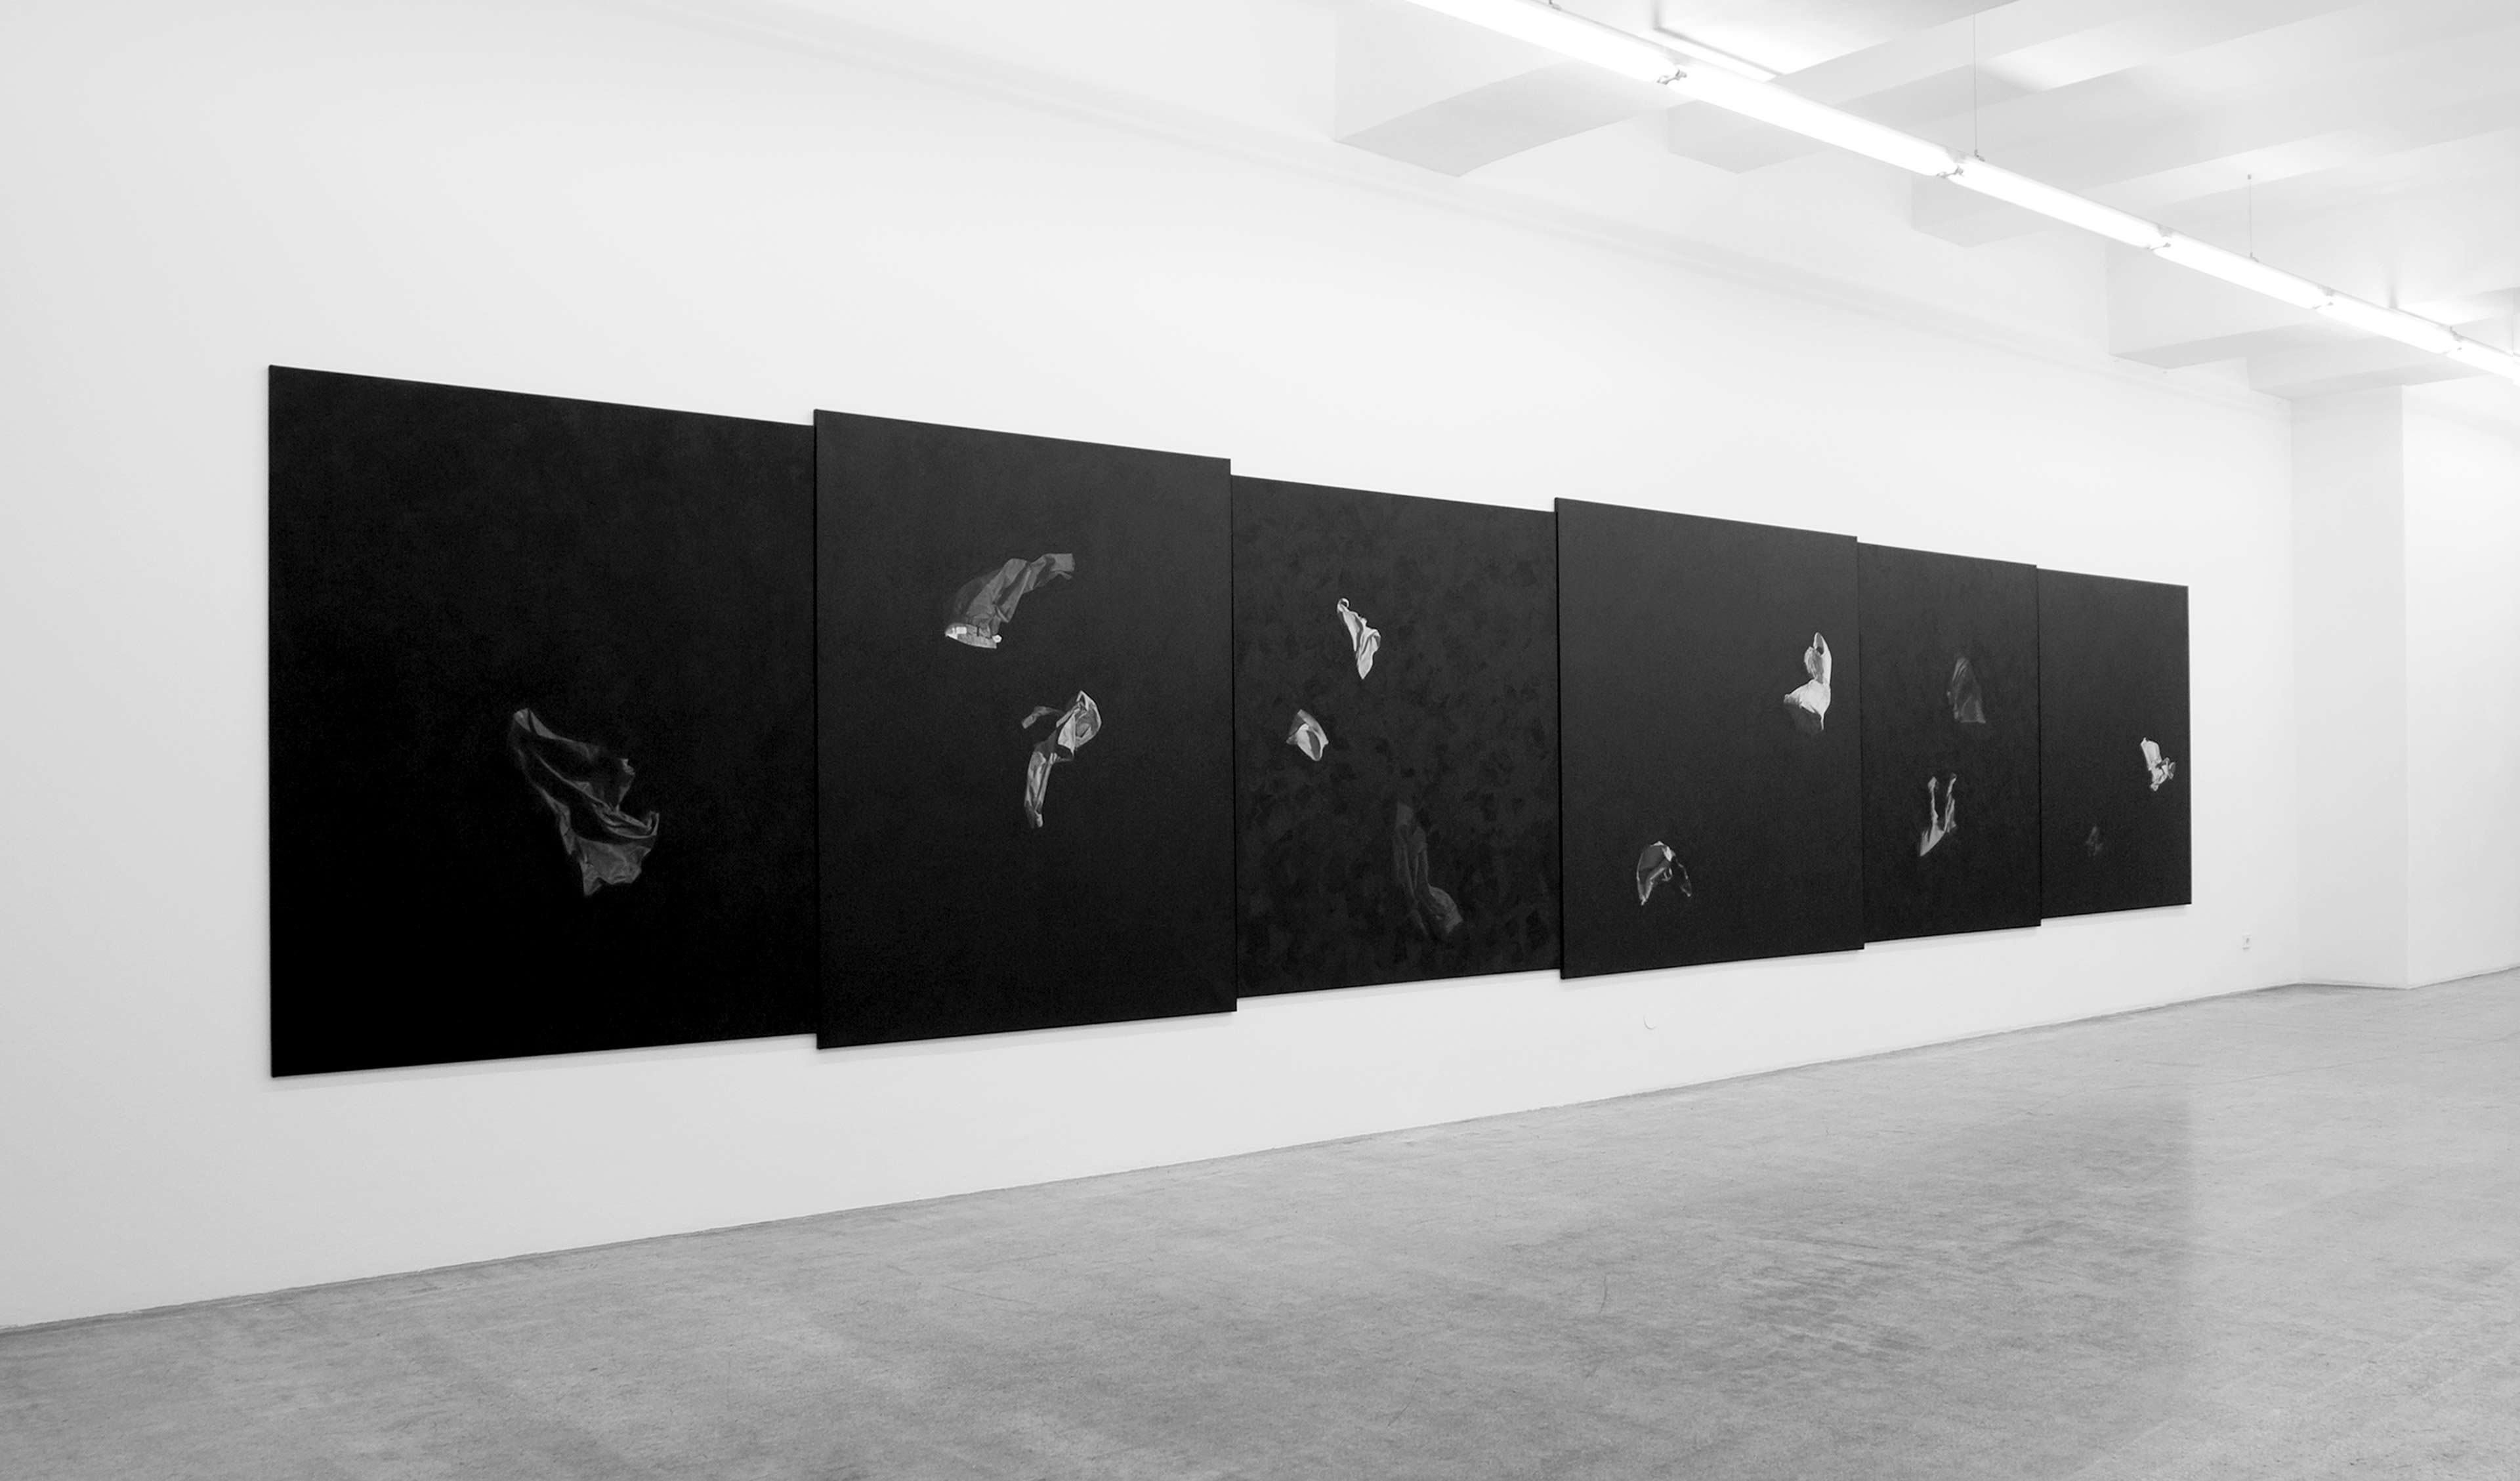 Drago Persic Installation view Engholm Gallery 2009